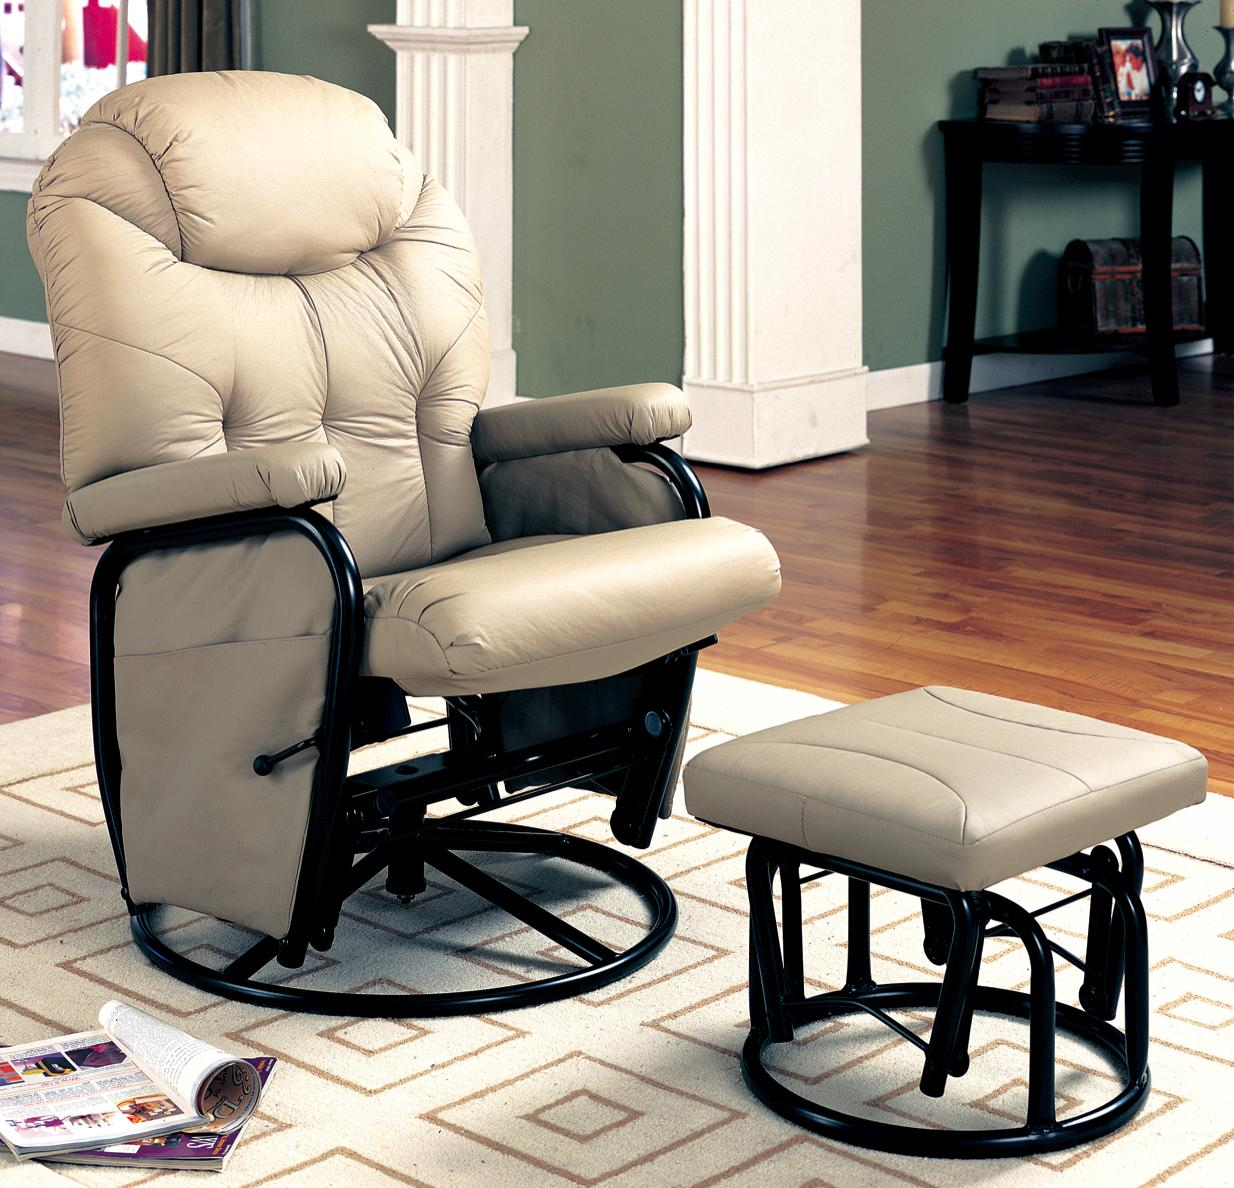 glider recliner chair with ottoman black and white striped chairs recliners ottomans deluxe swivel matching